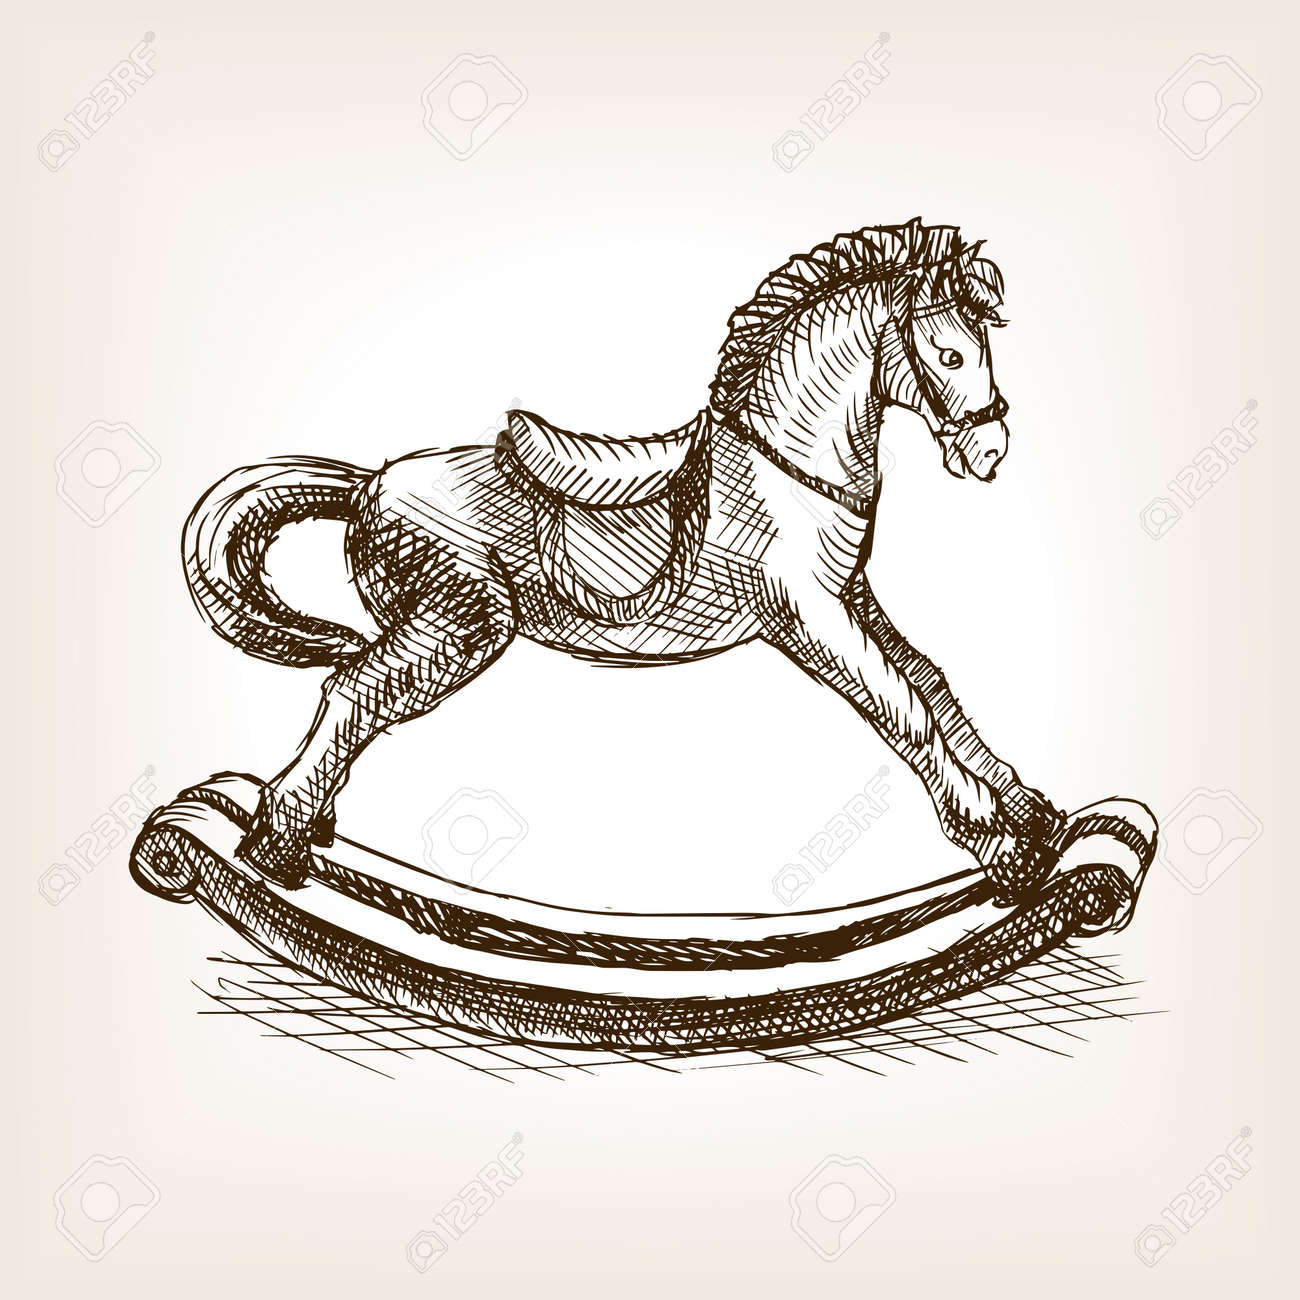 Vintage Rocking Horse Toy Sketch Style Vector Illustration Old Royalty Free Cliparts Vectors And Stock Illustration Image 55145741